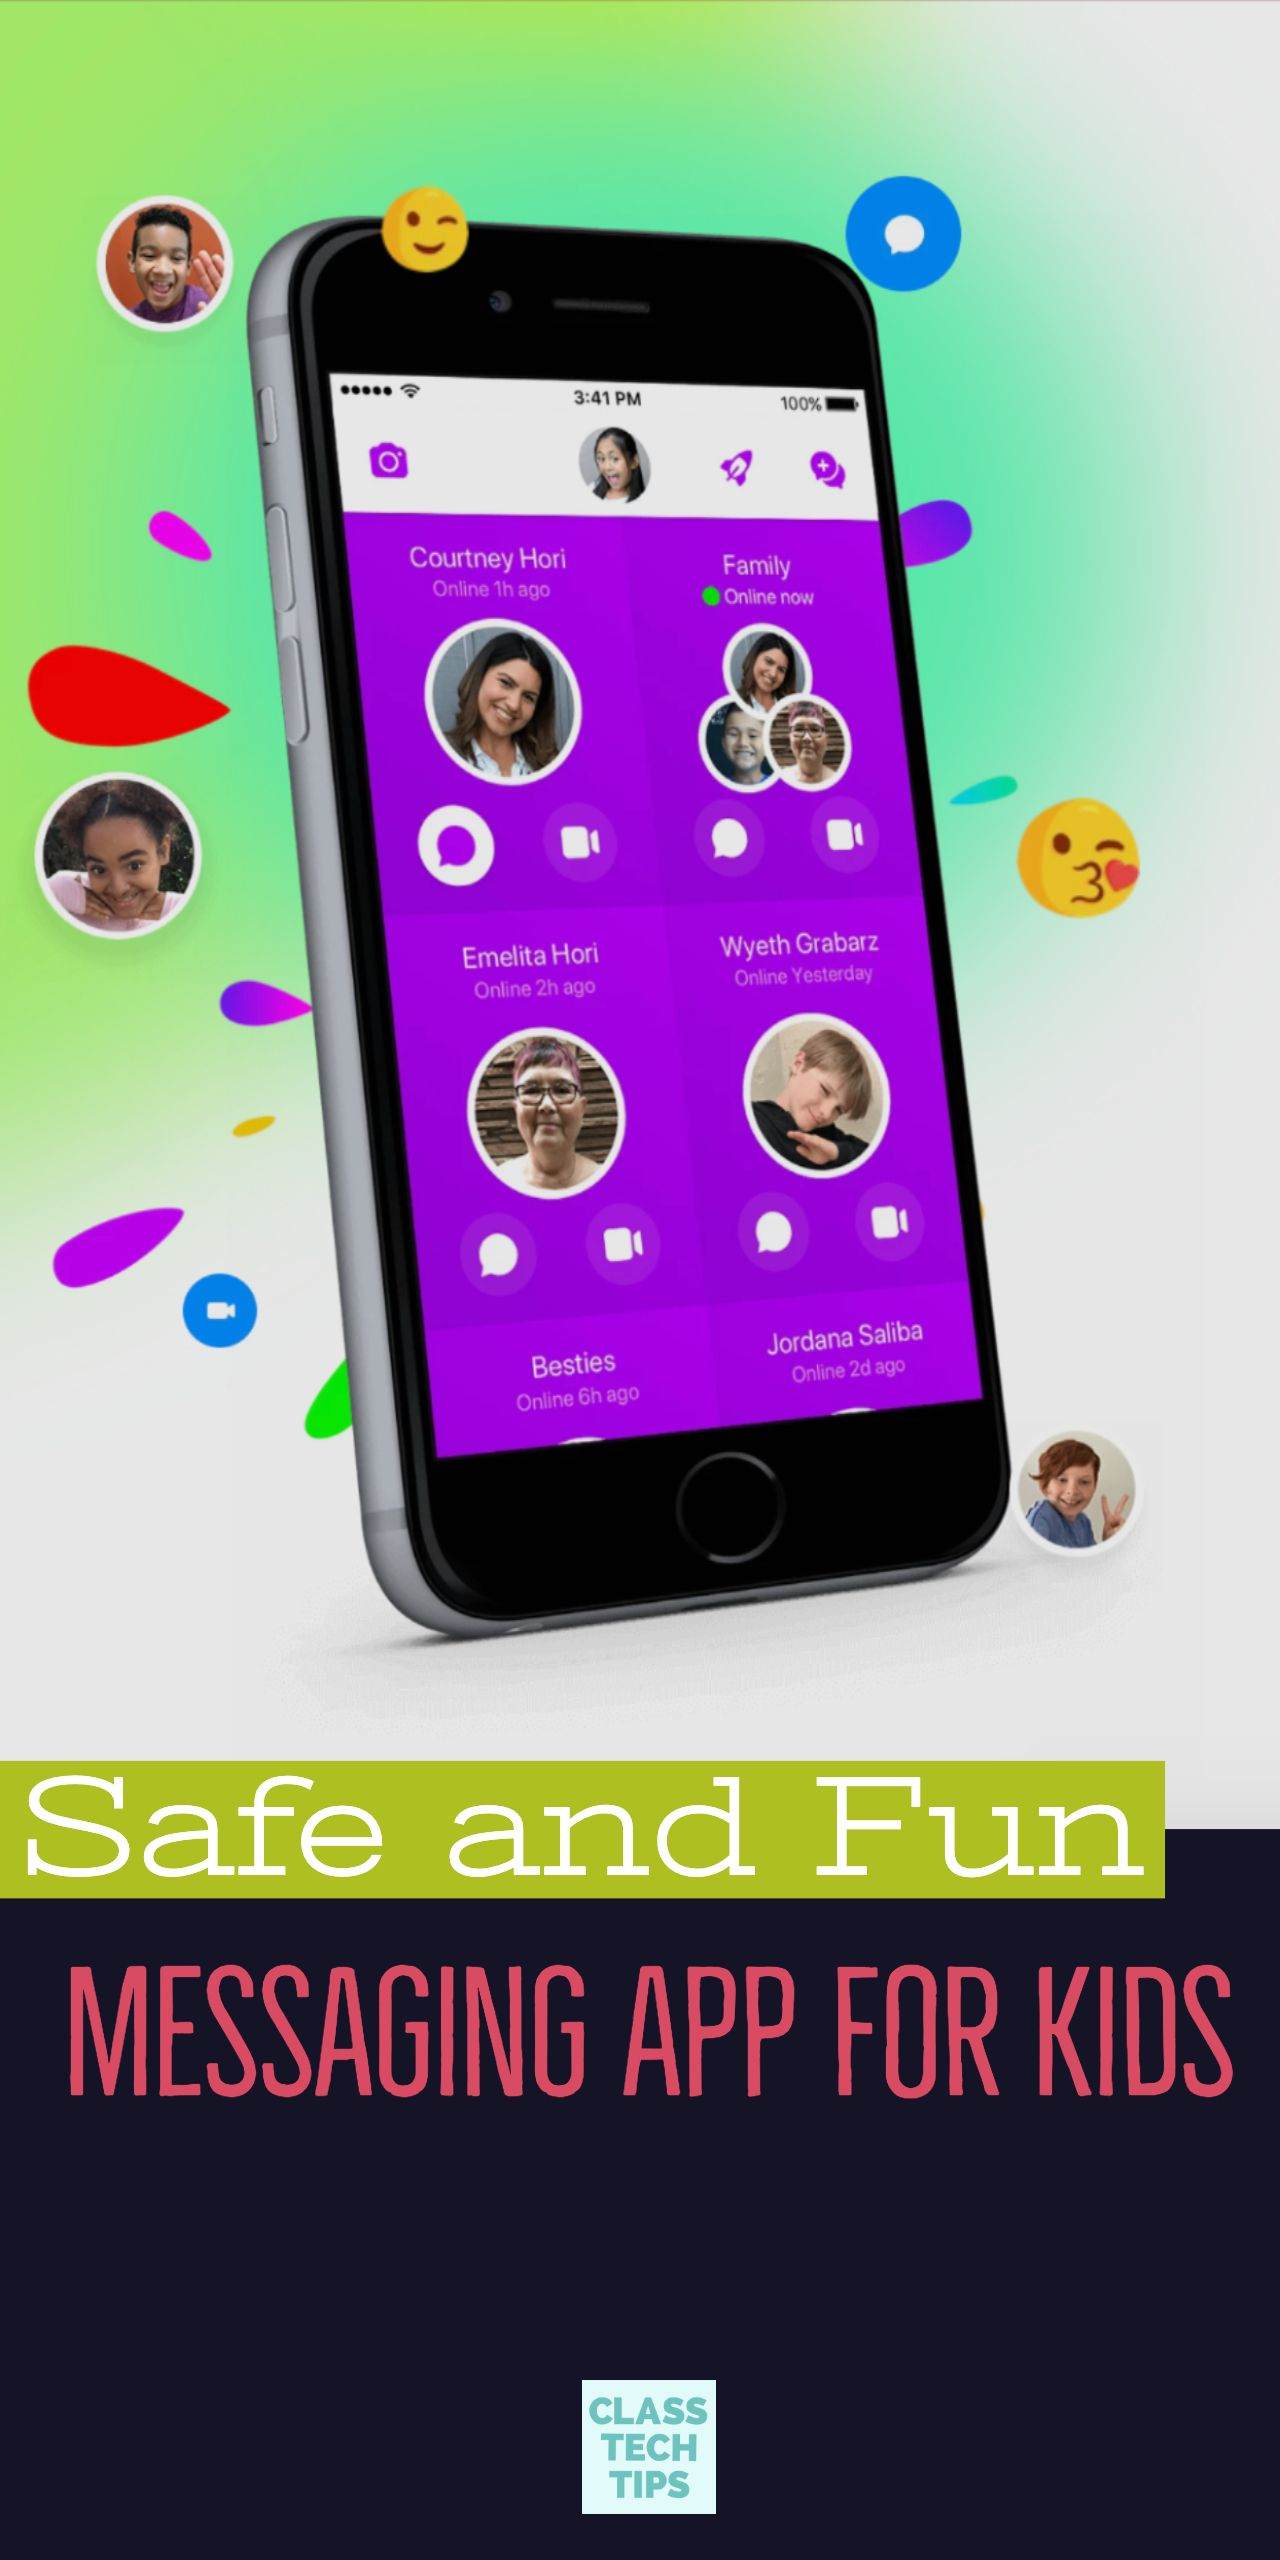 Safe and Fun Messaging App for Kids Learning apps, Kids